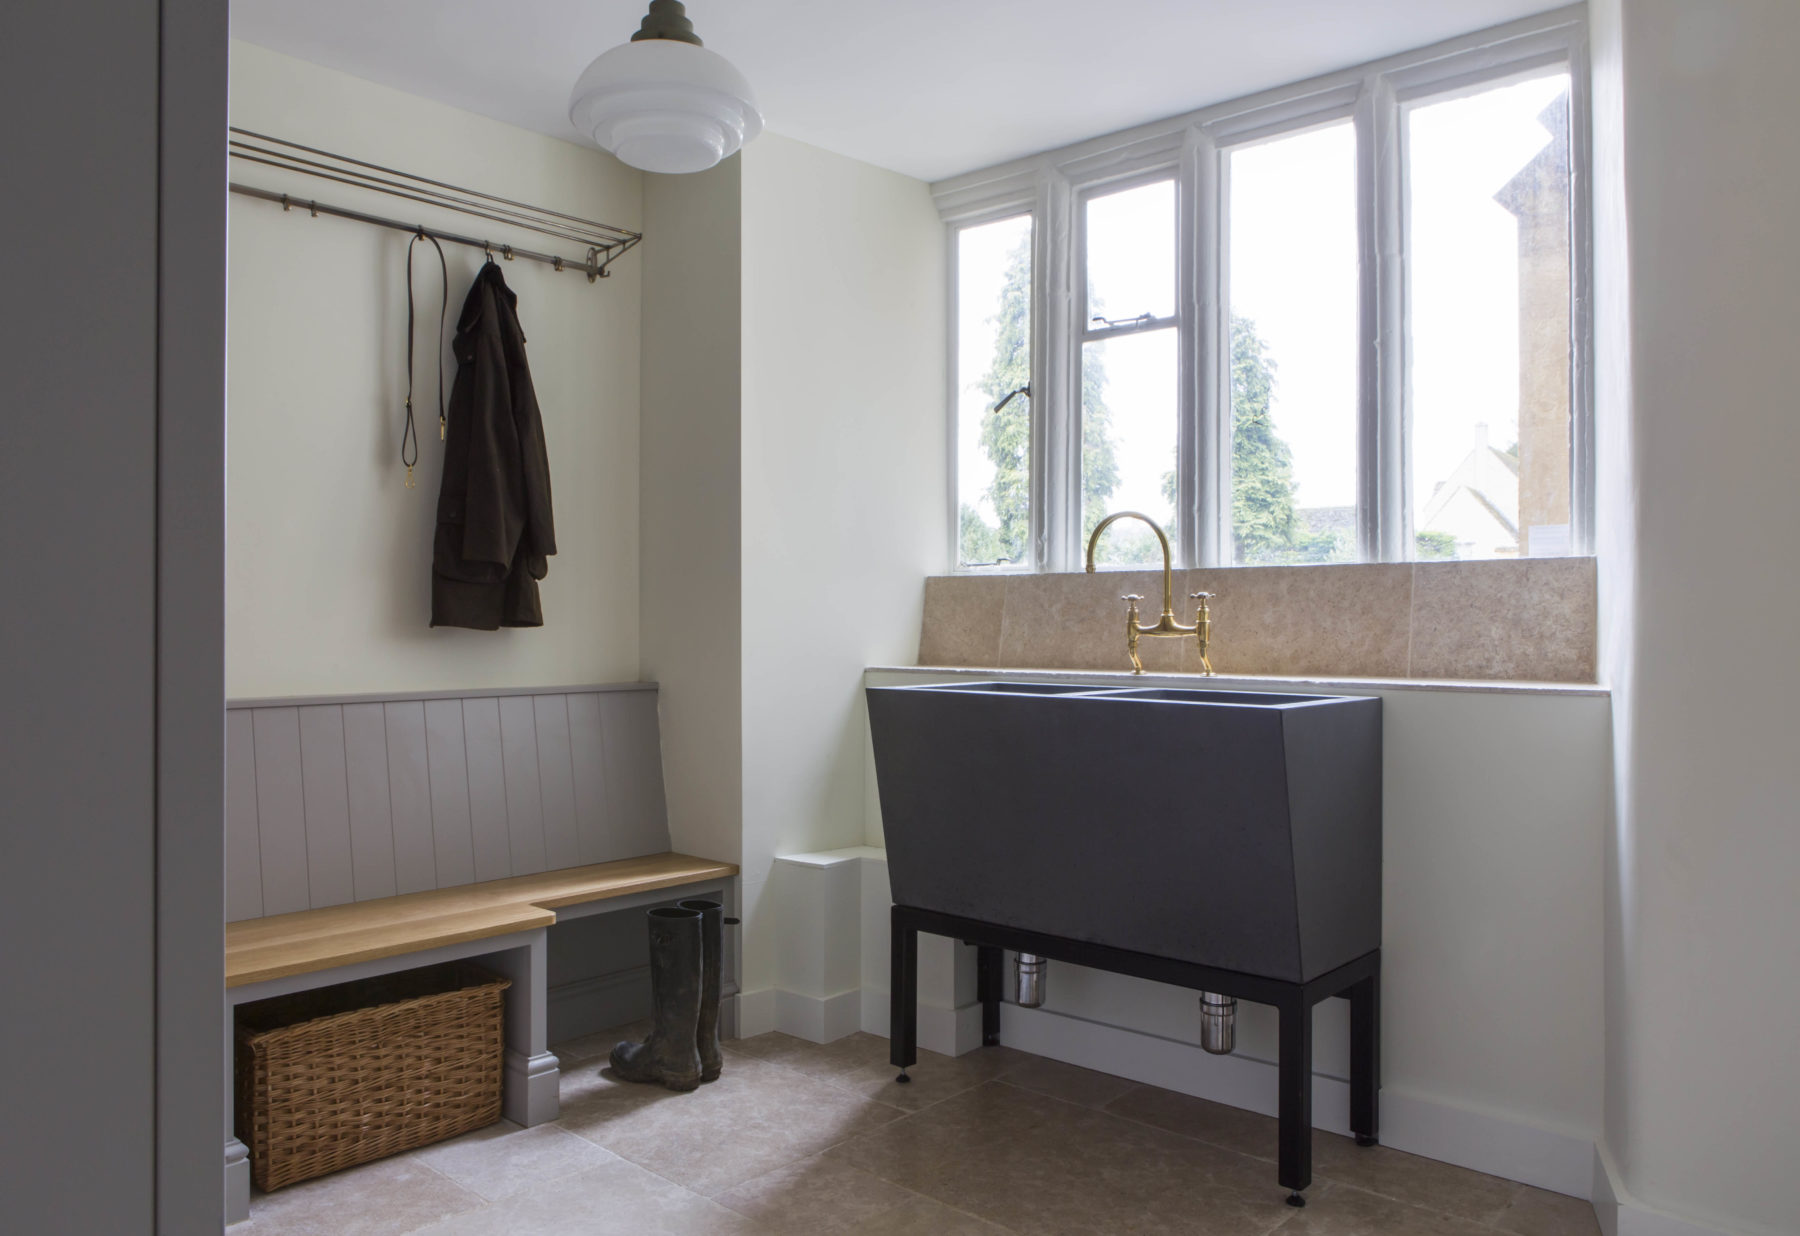 Langstaff-Ellis Bespoke Cabinetry and Sink Boot Room, Cotswolds